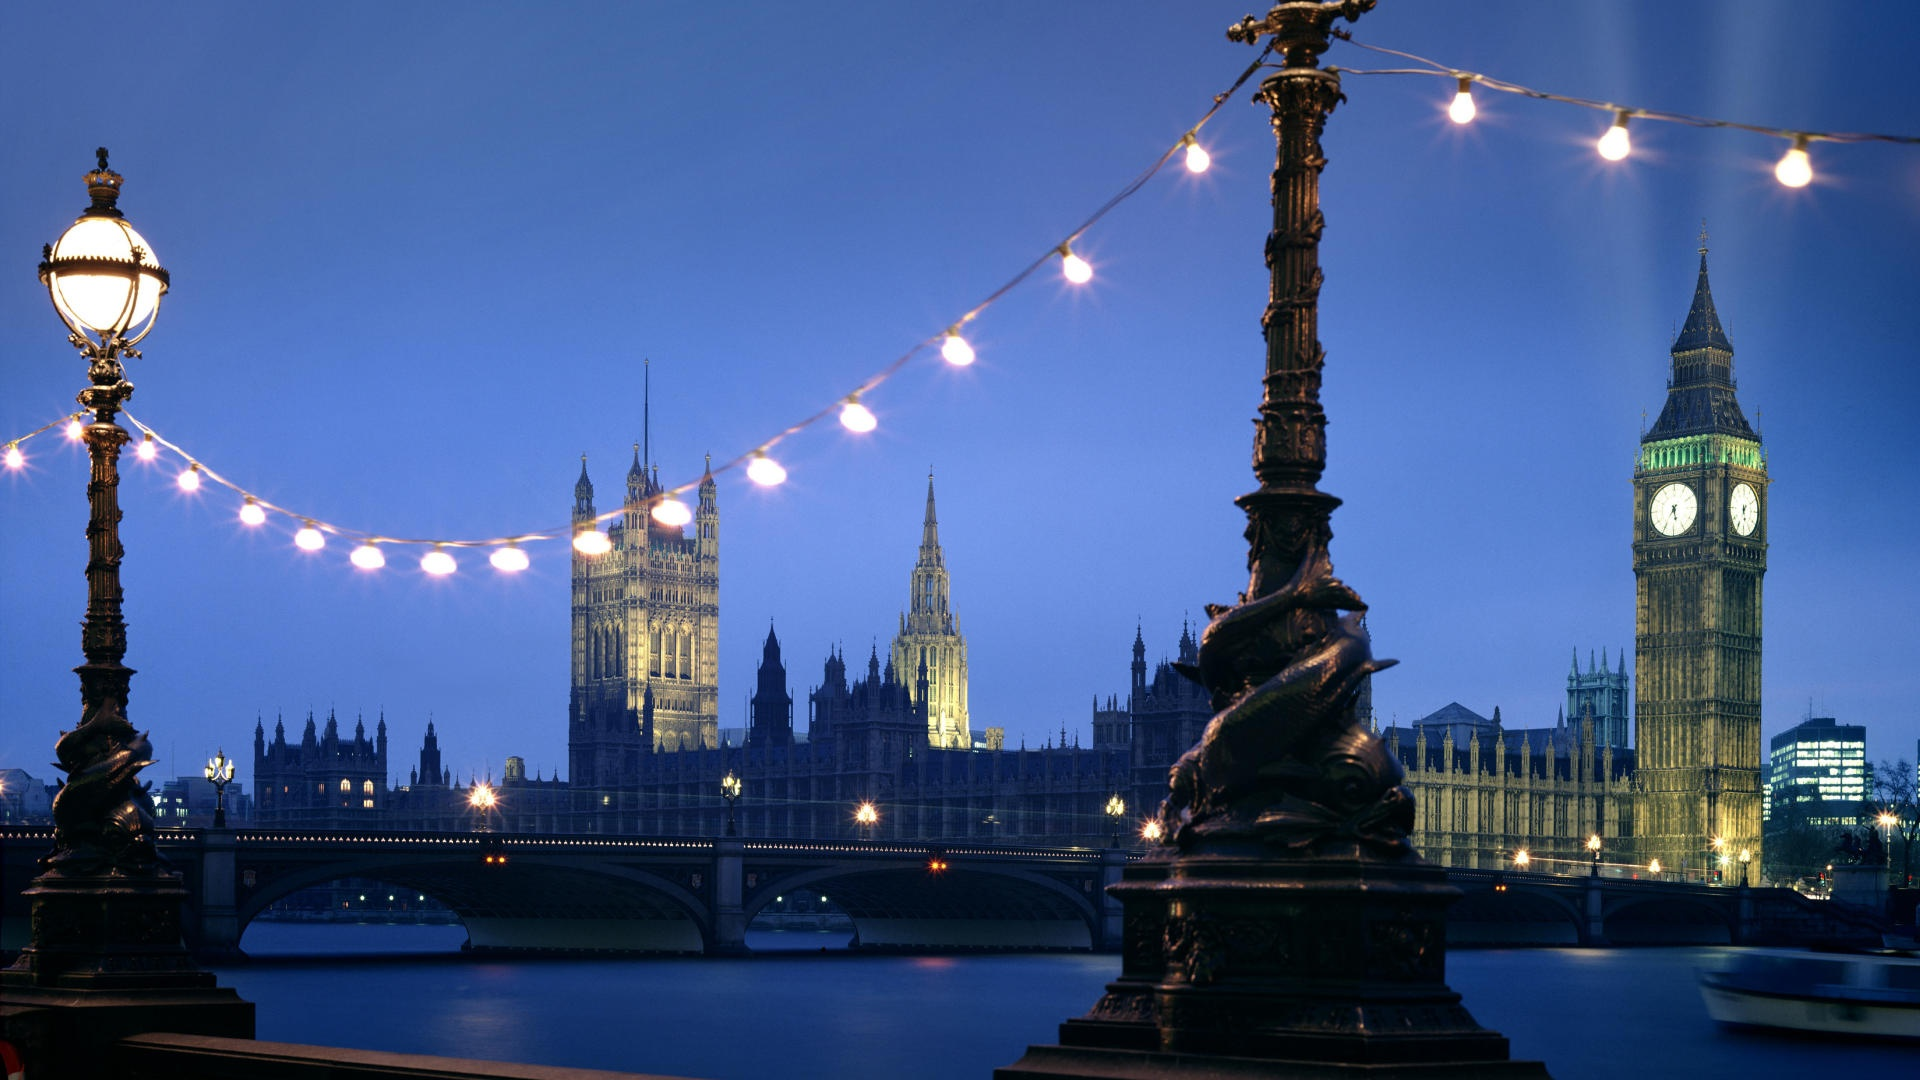 Westminster London - 1920x1080 - 16:9